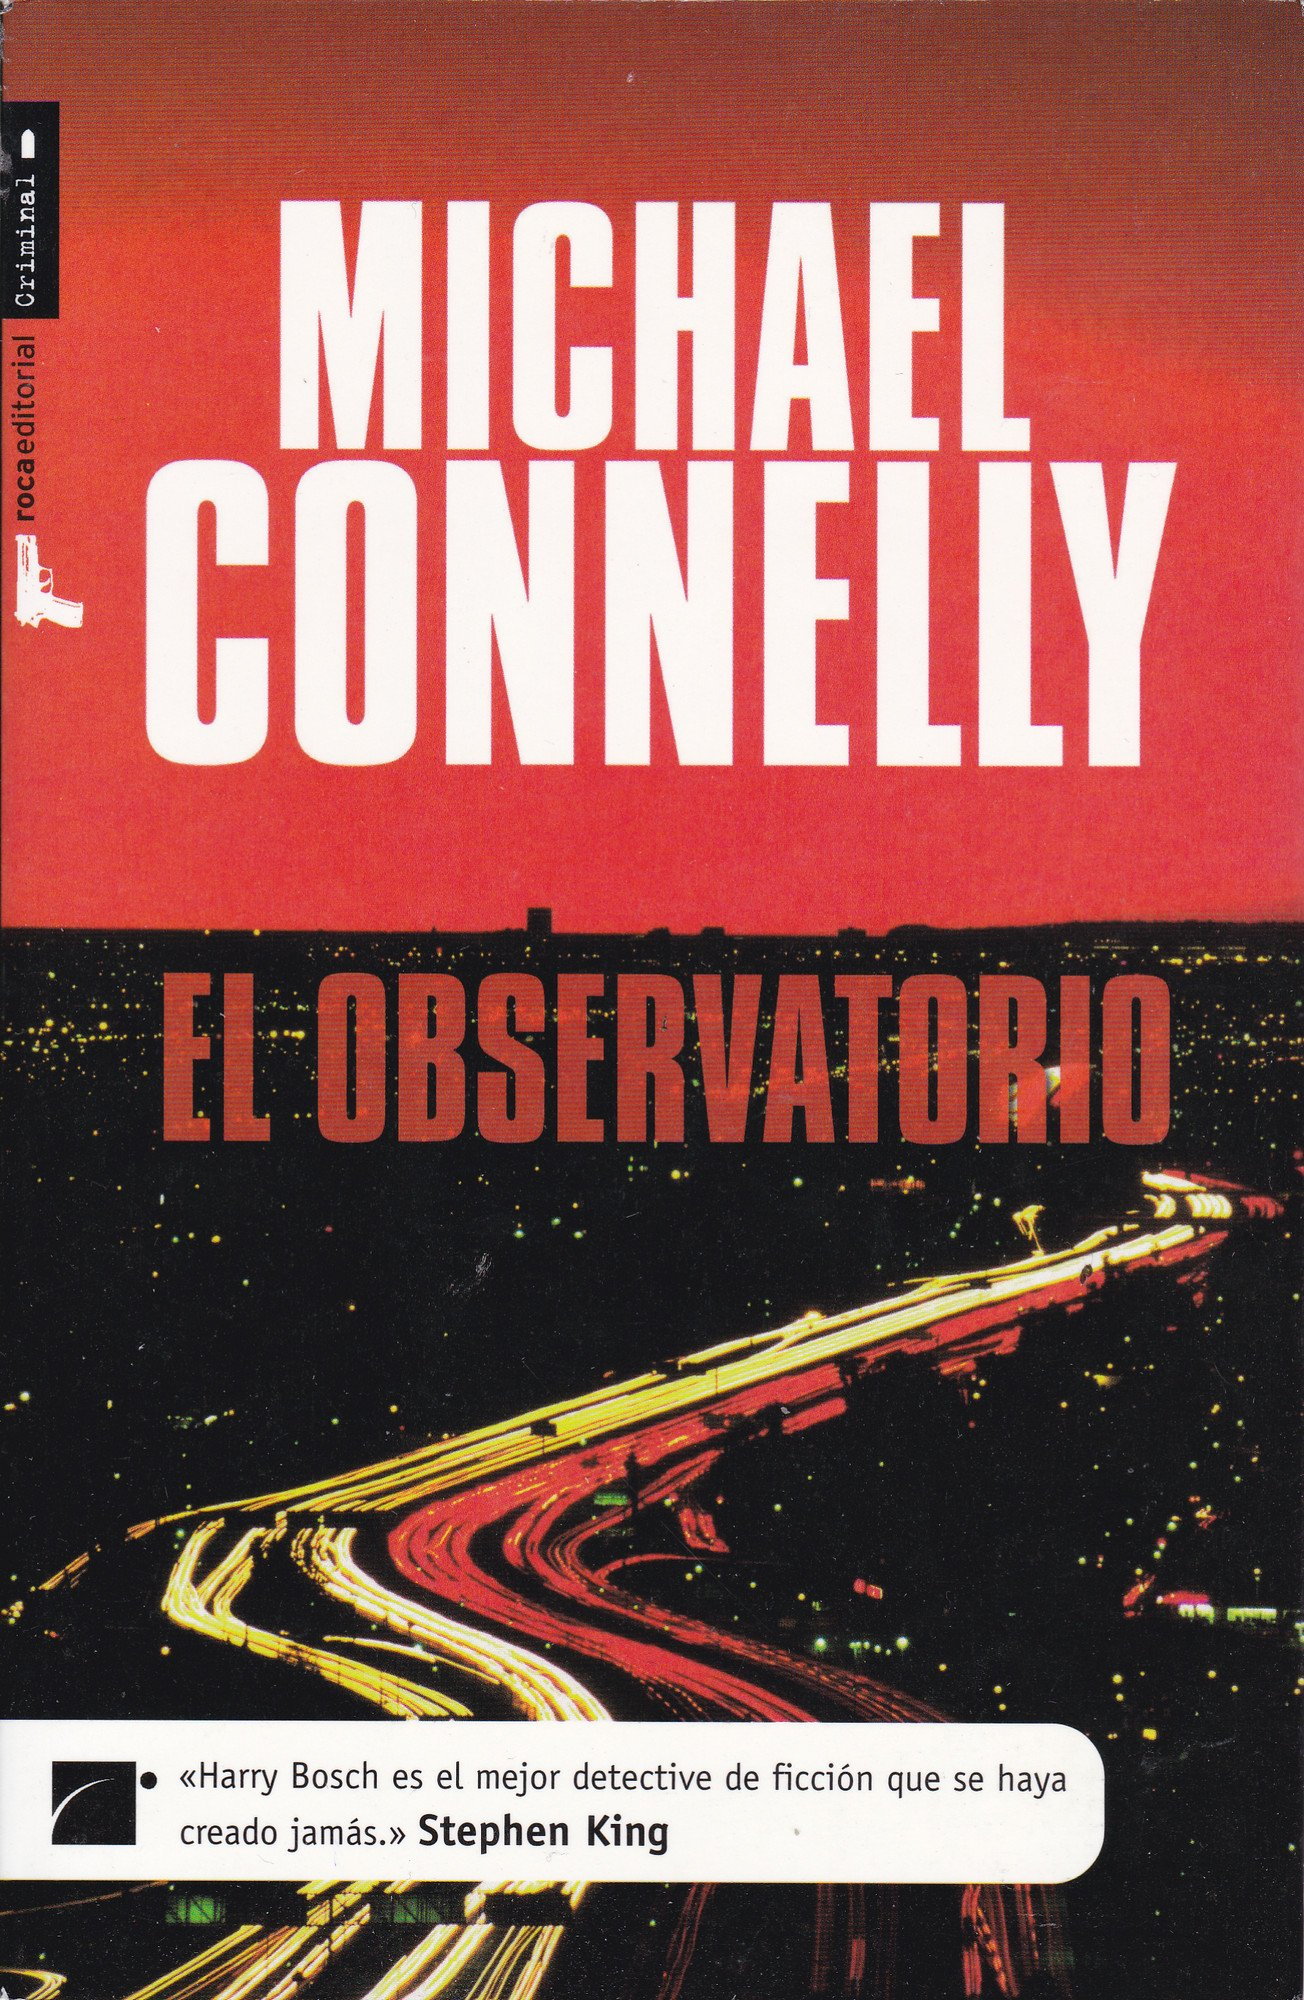 Amazon.in: Buy El observatorio Book Online at Low Prices in India | El  observatorio Reviews & Ratings